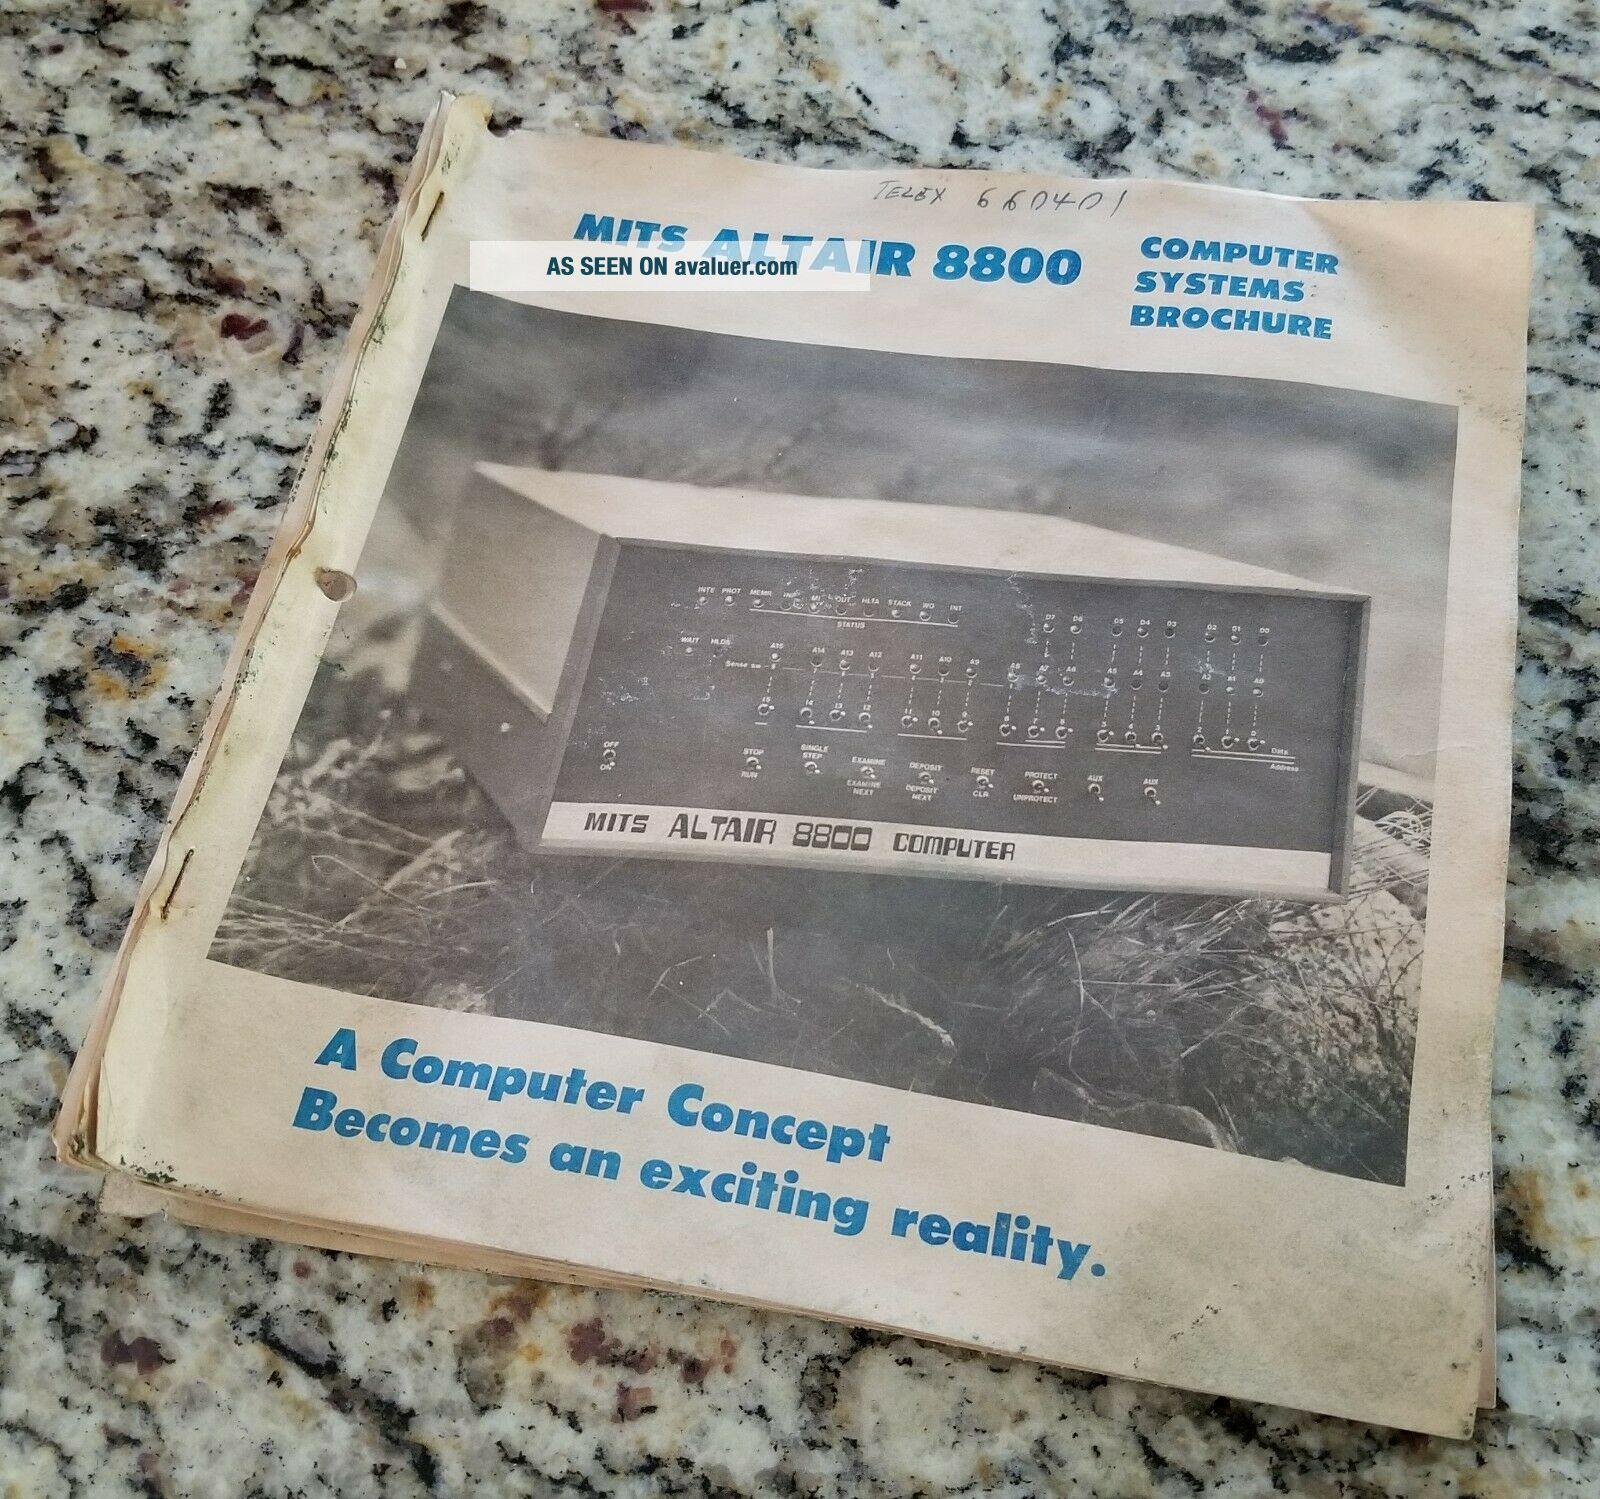 WOW MITS Altair 8800 Computer Systems Brochure 1974 - S100 vintage